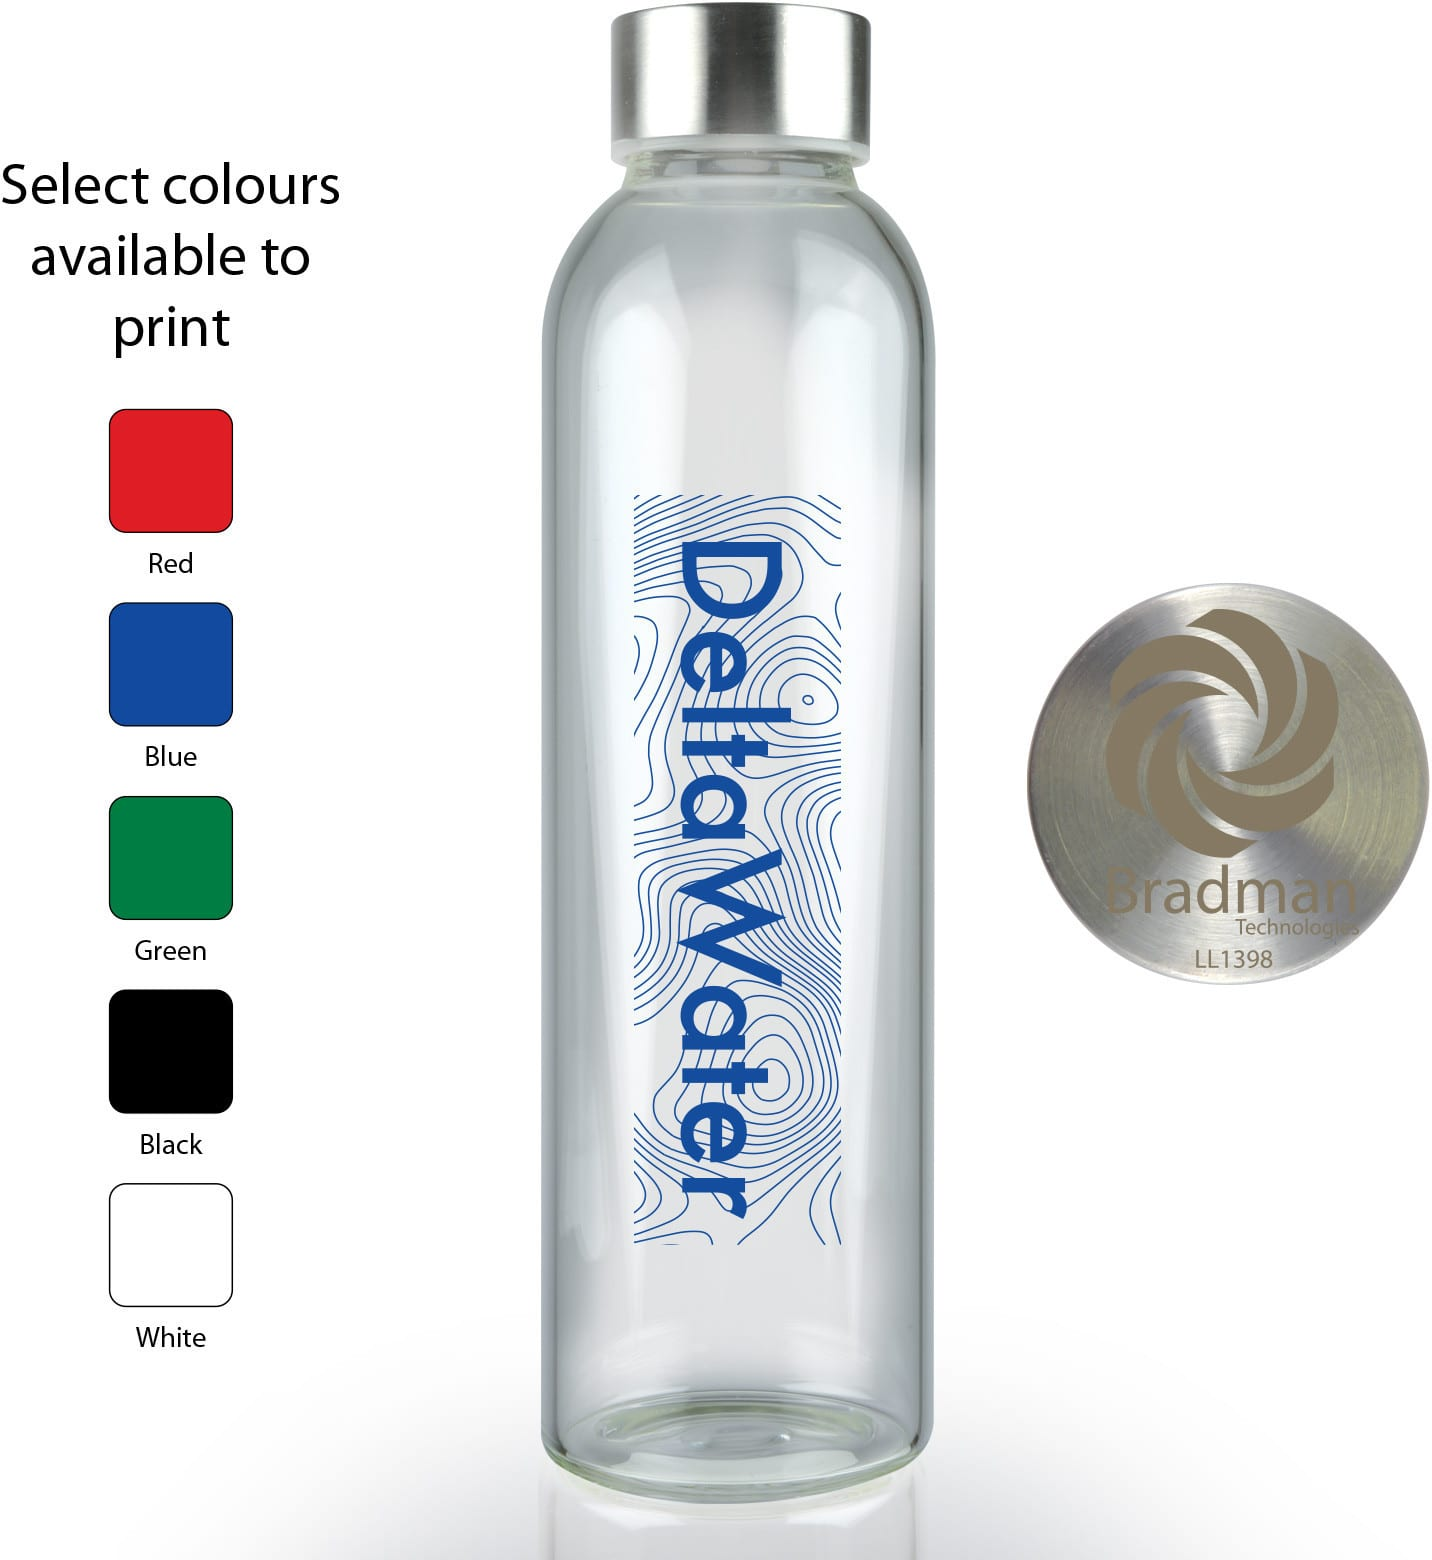 Caprice 570 ml Glass Drink Bottle - Crystal Clear